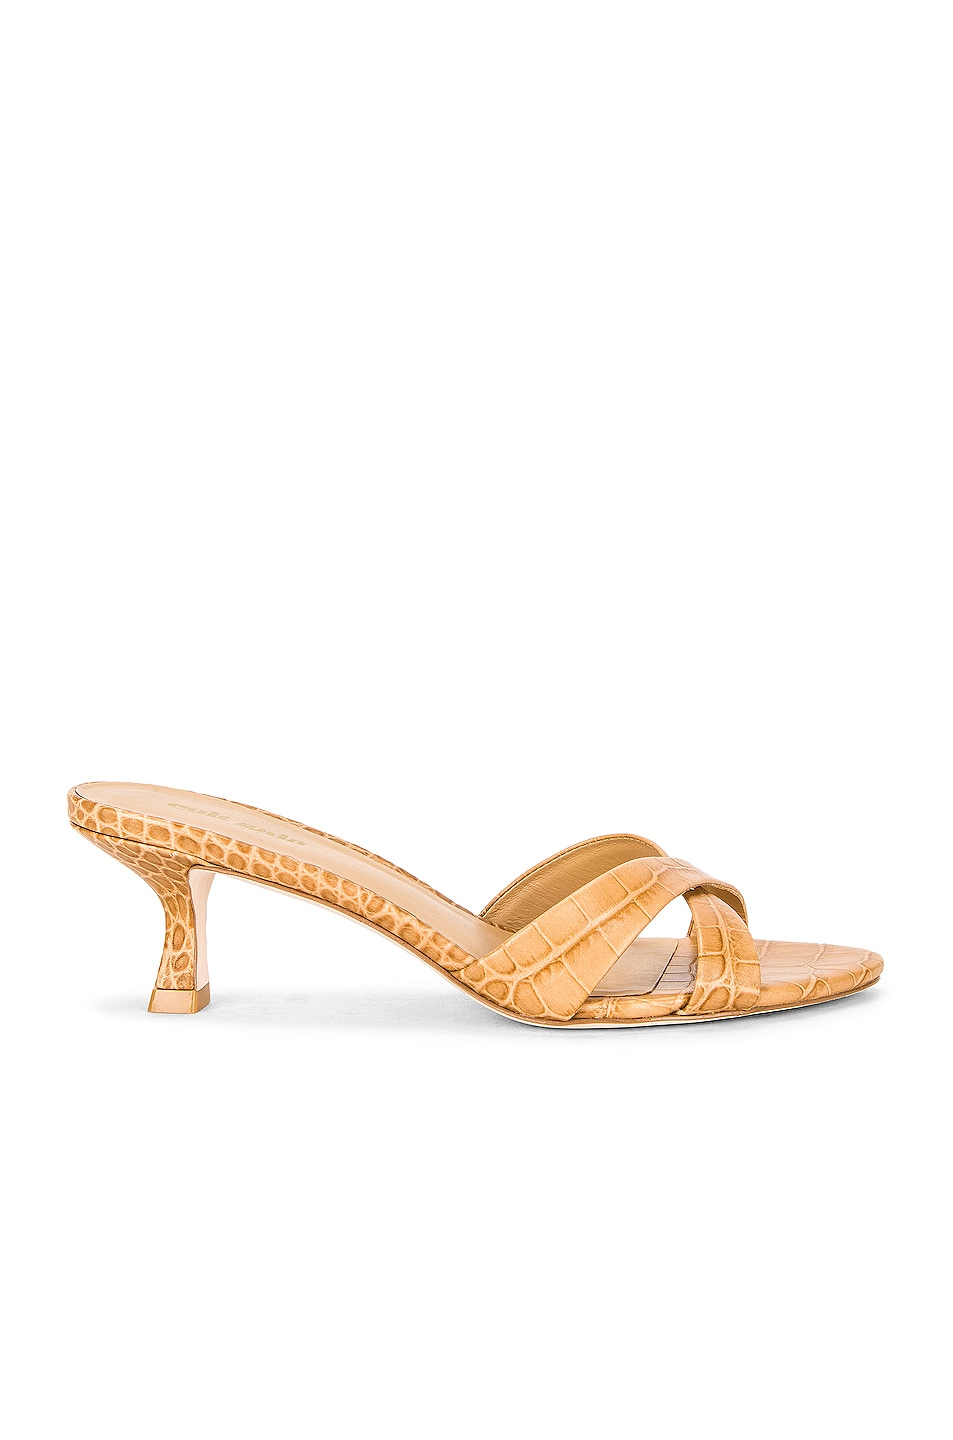 Image 1 of Cult Gaia Melina Sandal in Almond